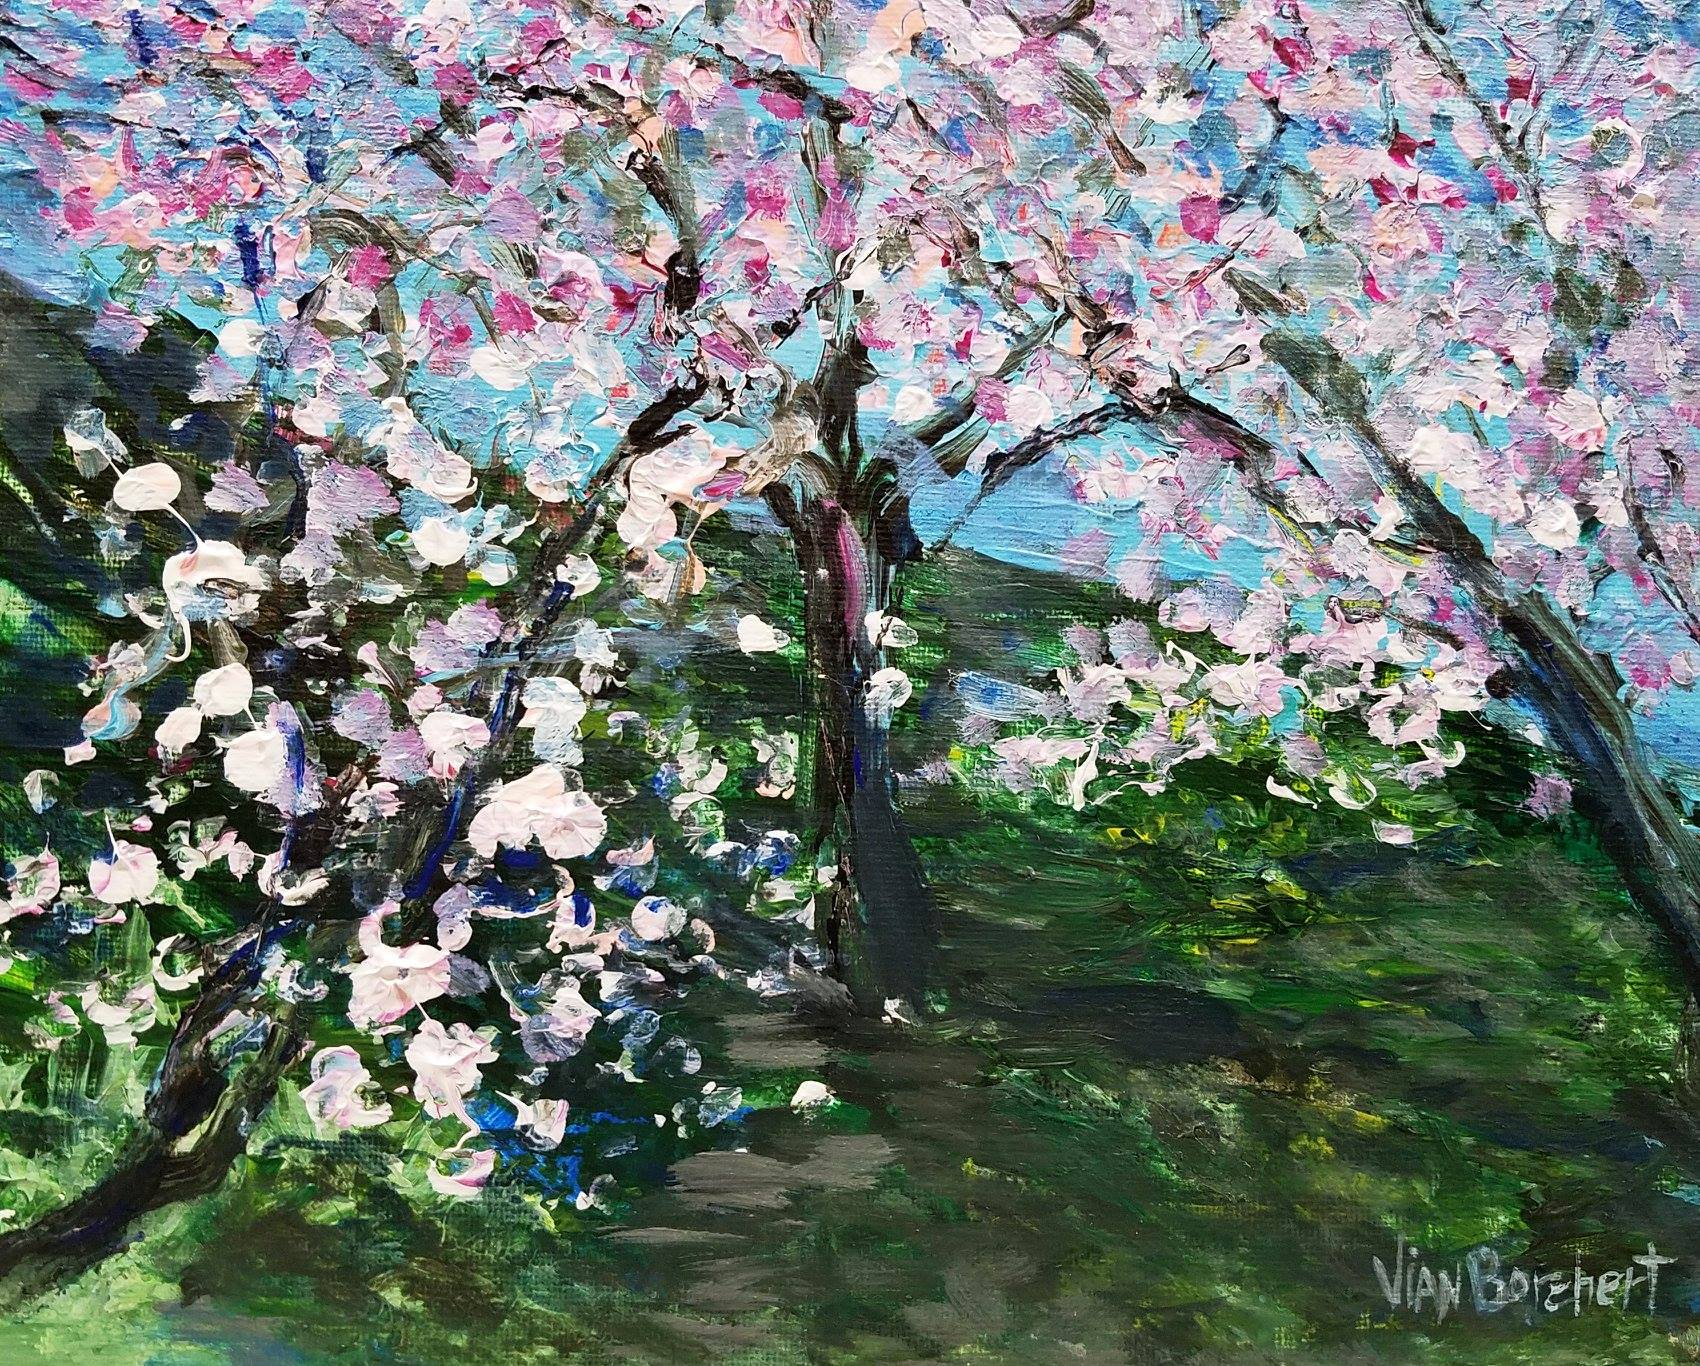 Cherry blossom, painting, impressionist, expressionist, abstract, art, landscape, abstract expressionism